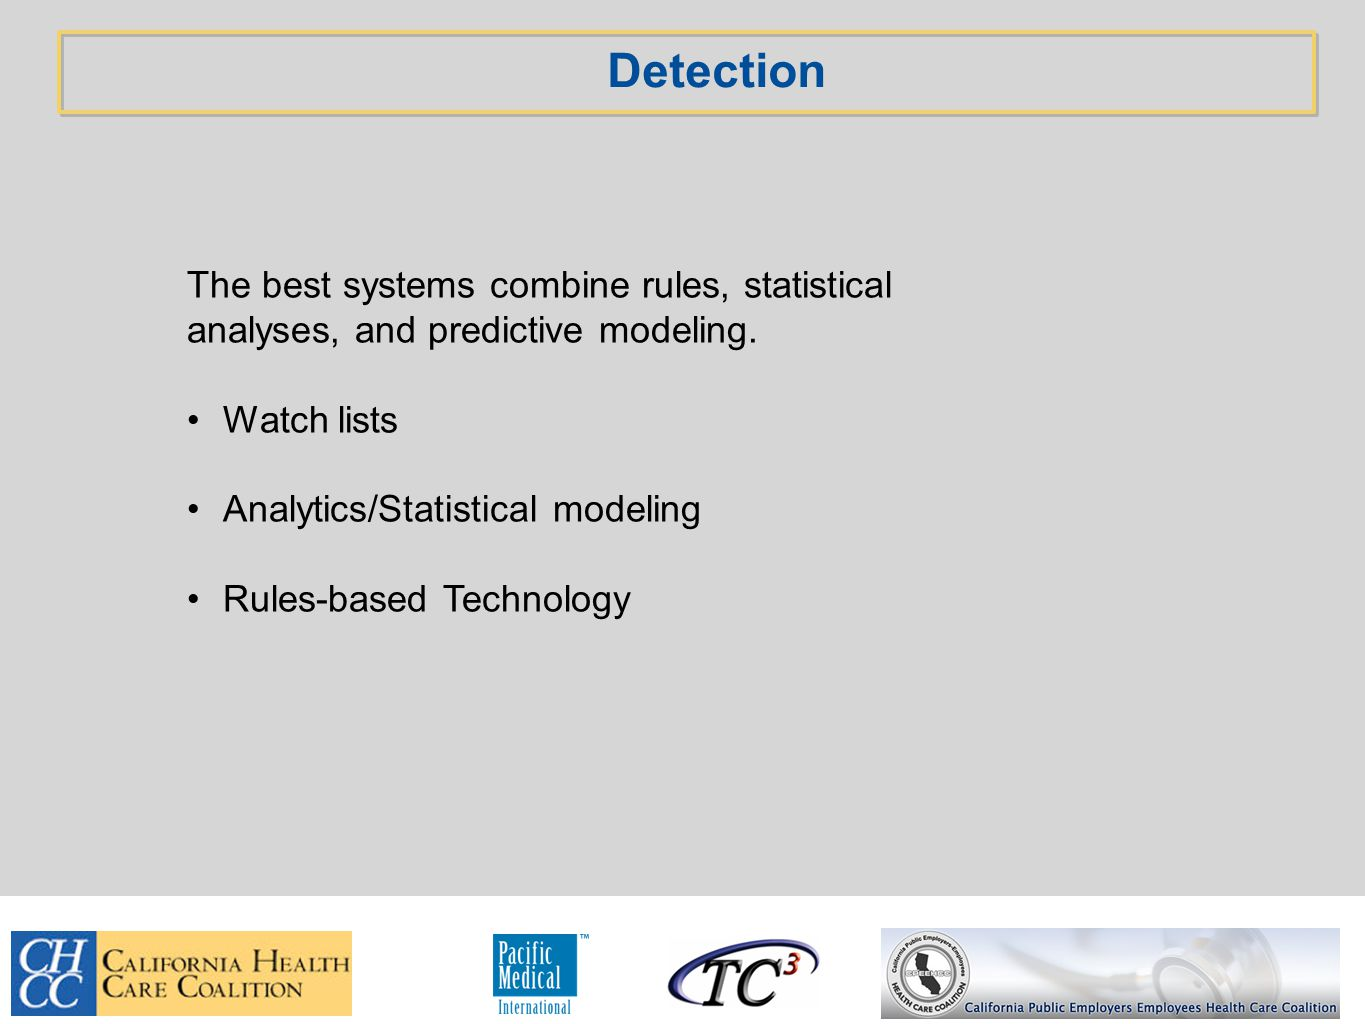 Detection The best systems combine rules, statistical analyses, and predictive modeling.